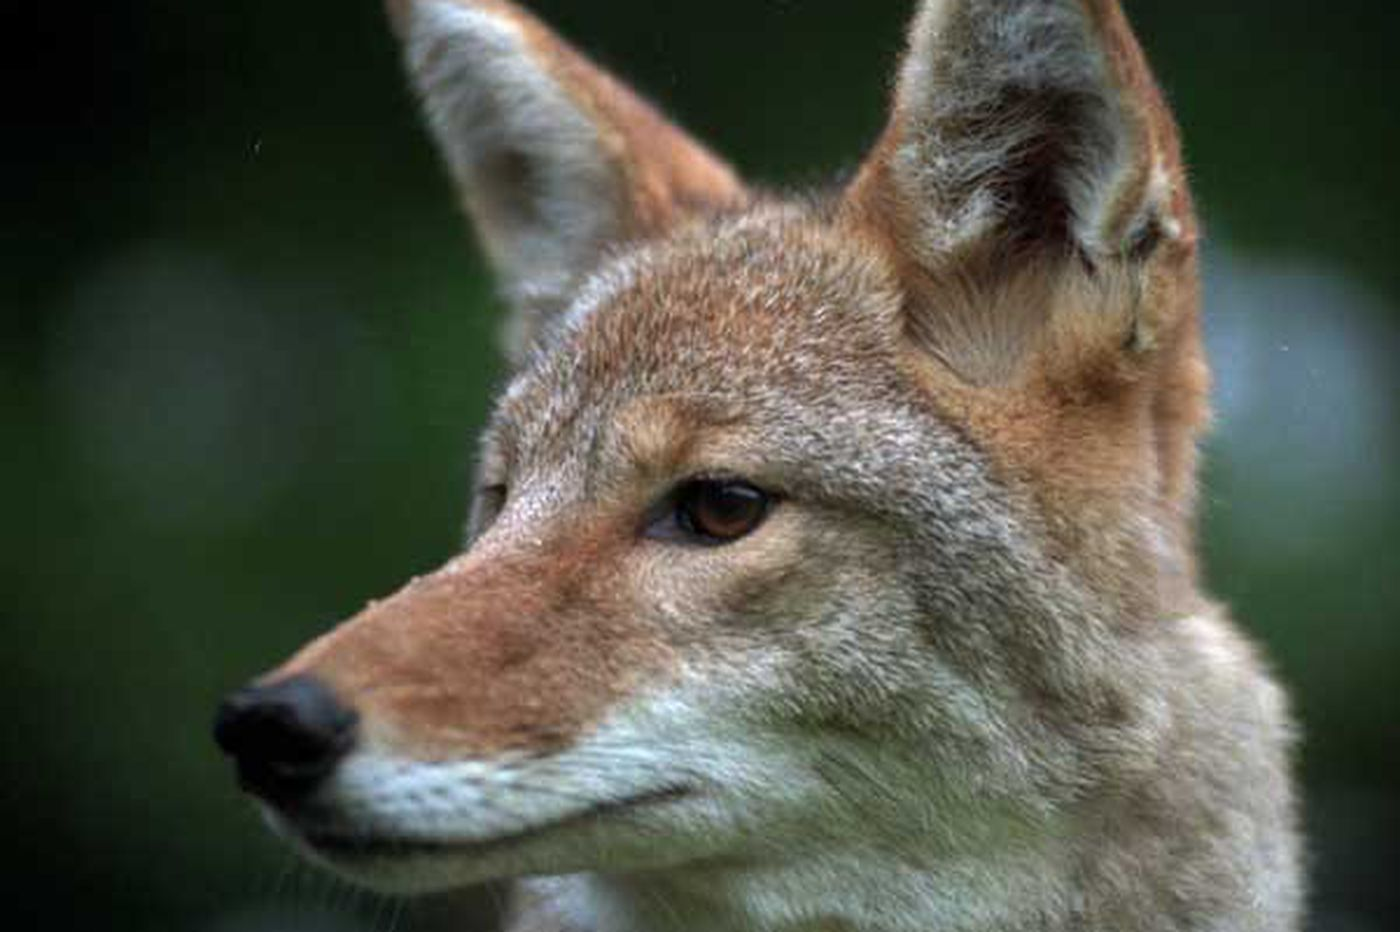 Coyote conspiracy: Myth, or state-business collusion?